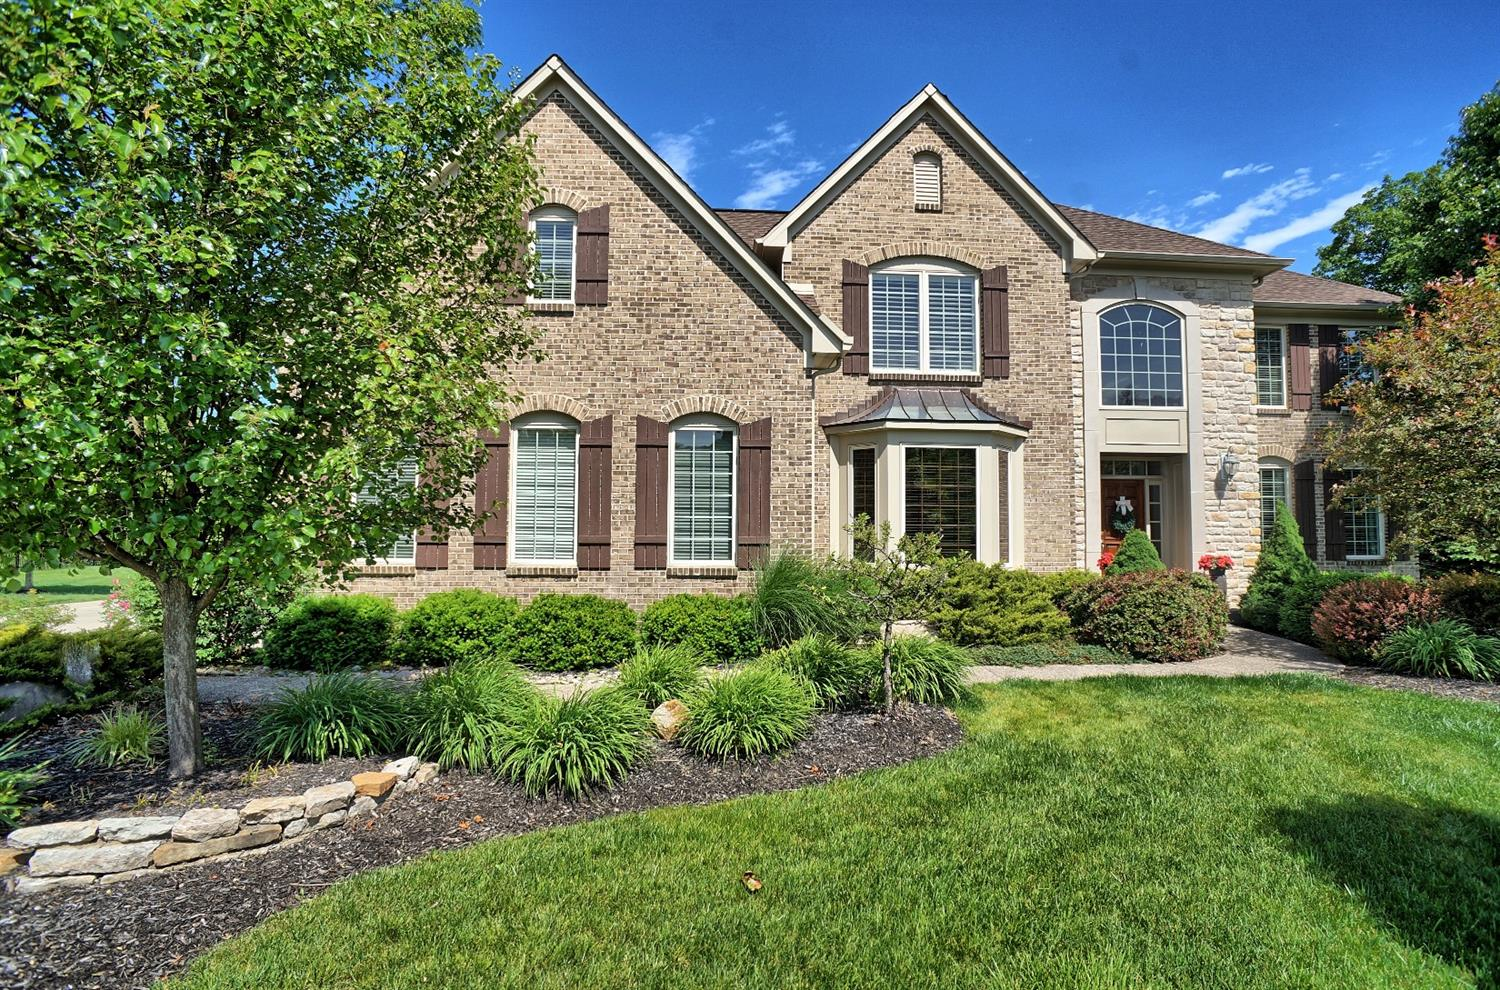 6719 Sandy Shores Dr Miami Twp. (East), OH